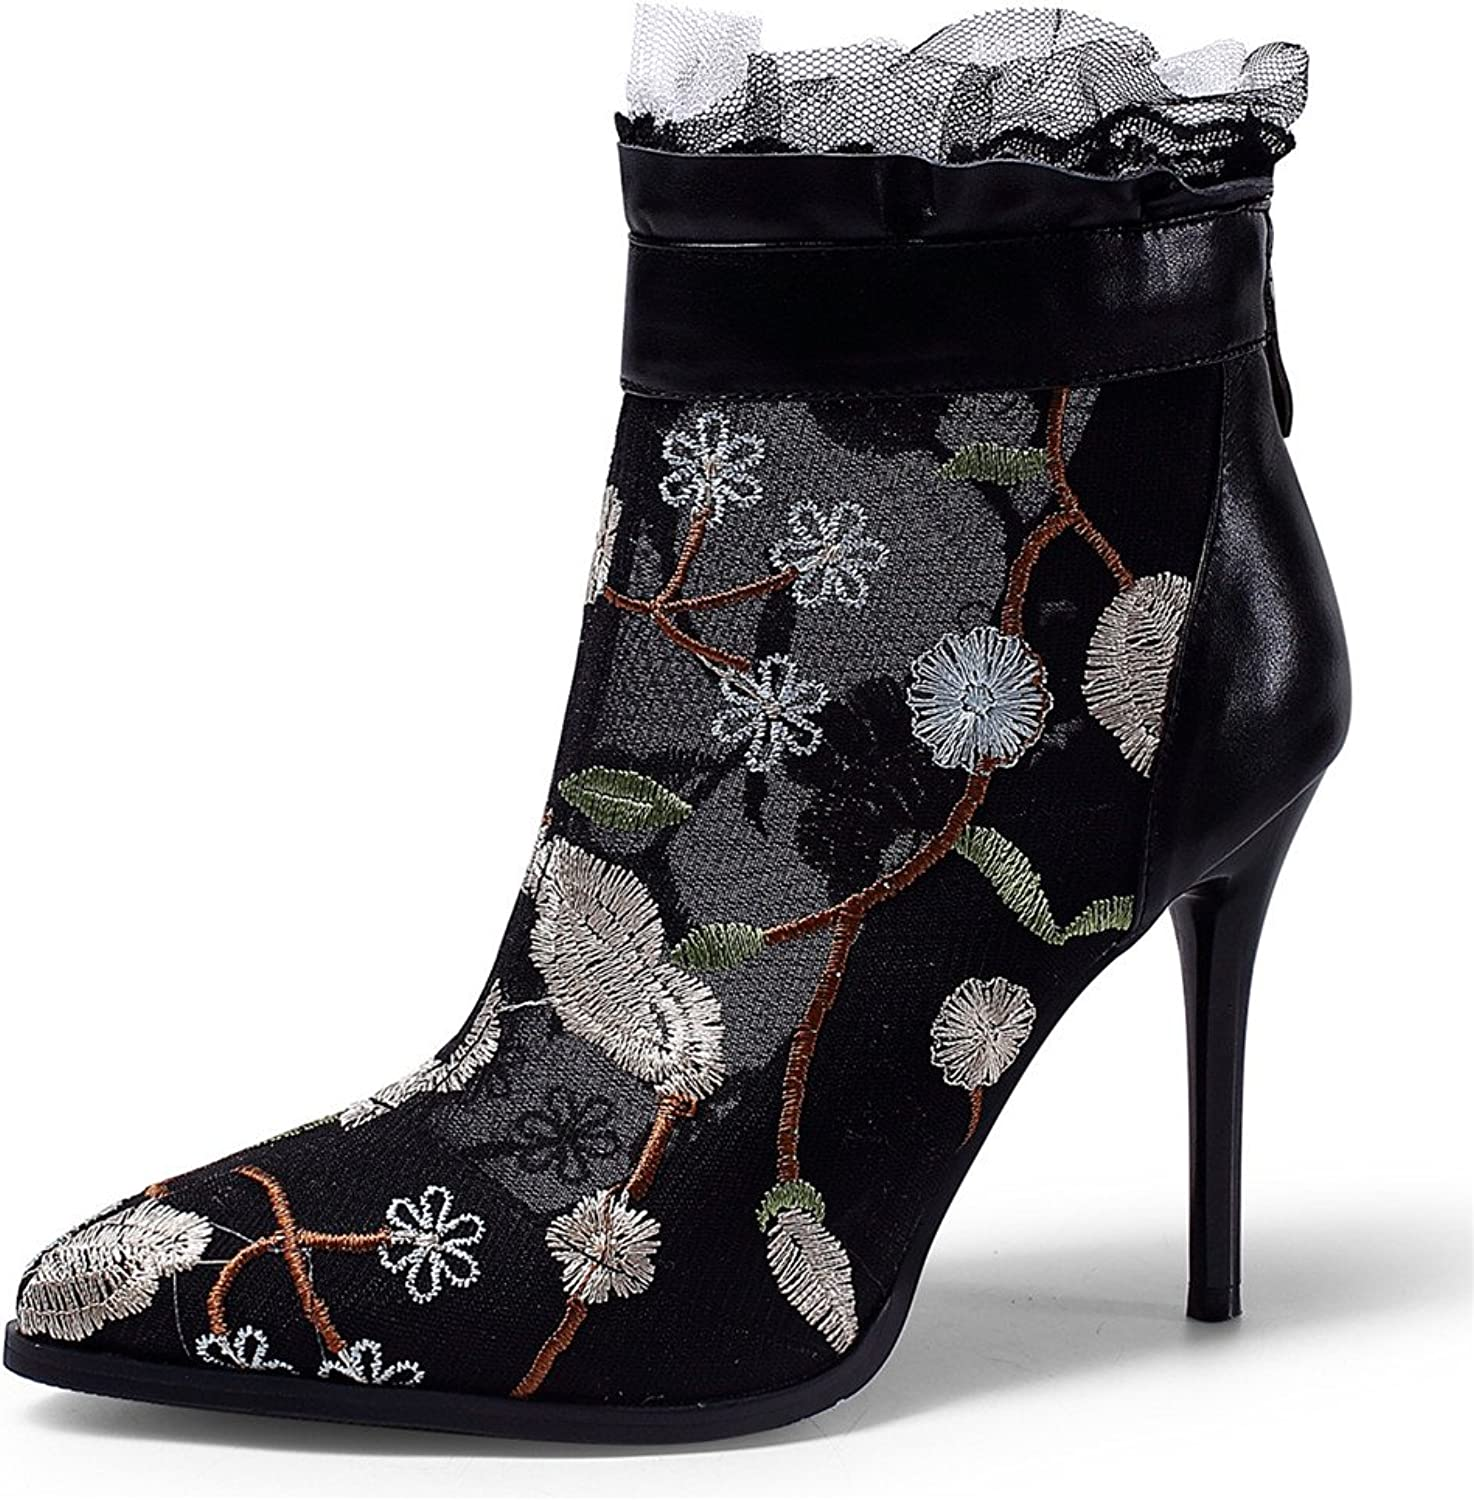 Nine Seven Cow Leather Women's Pointed Toe Stiletto Heel Embroideried Floral Handmade Mesh Ankle Boot